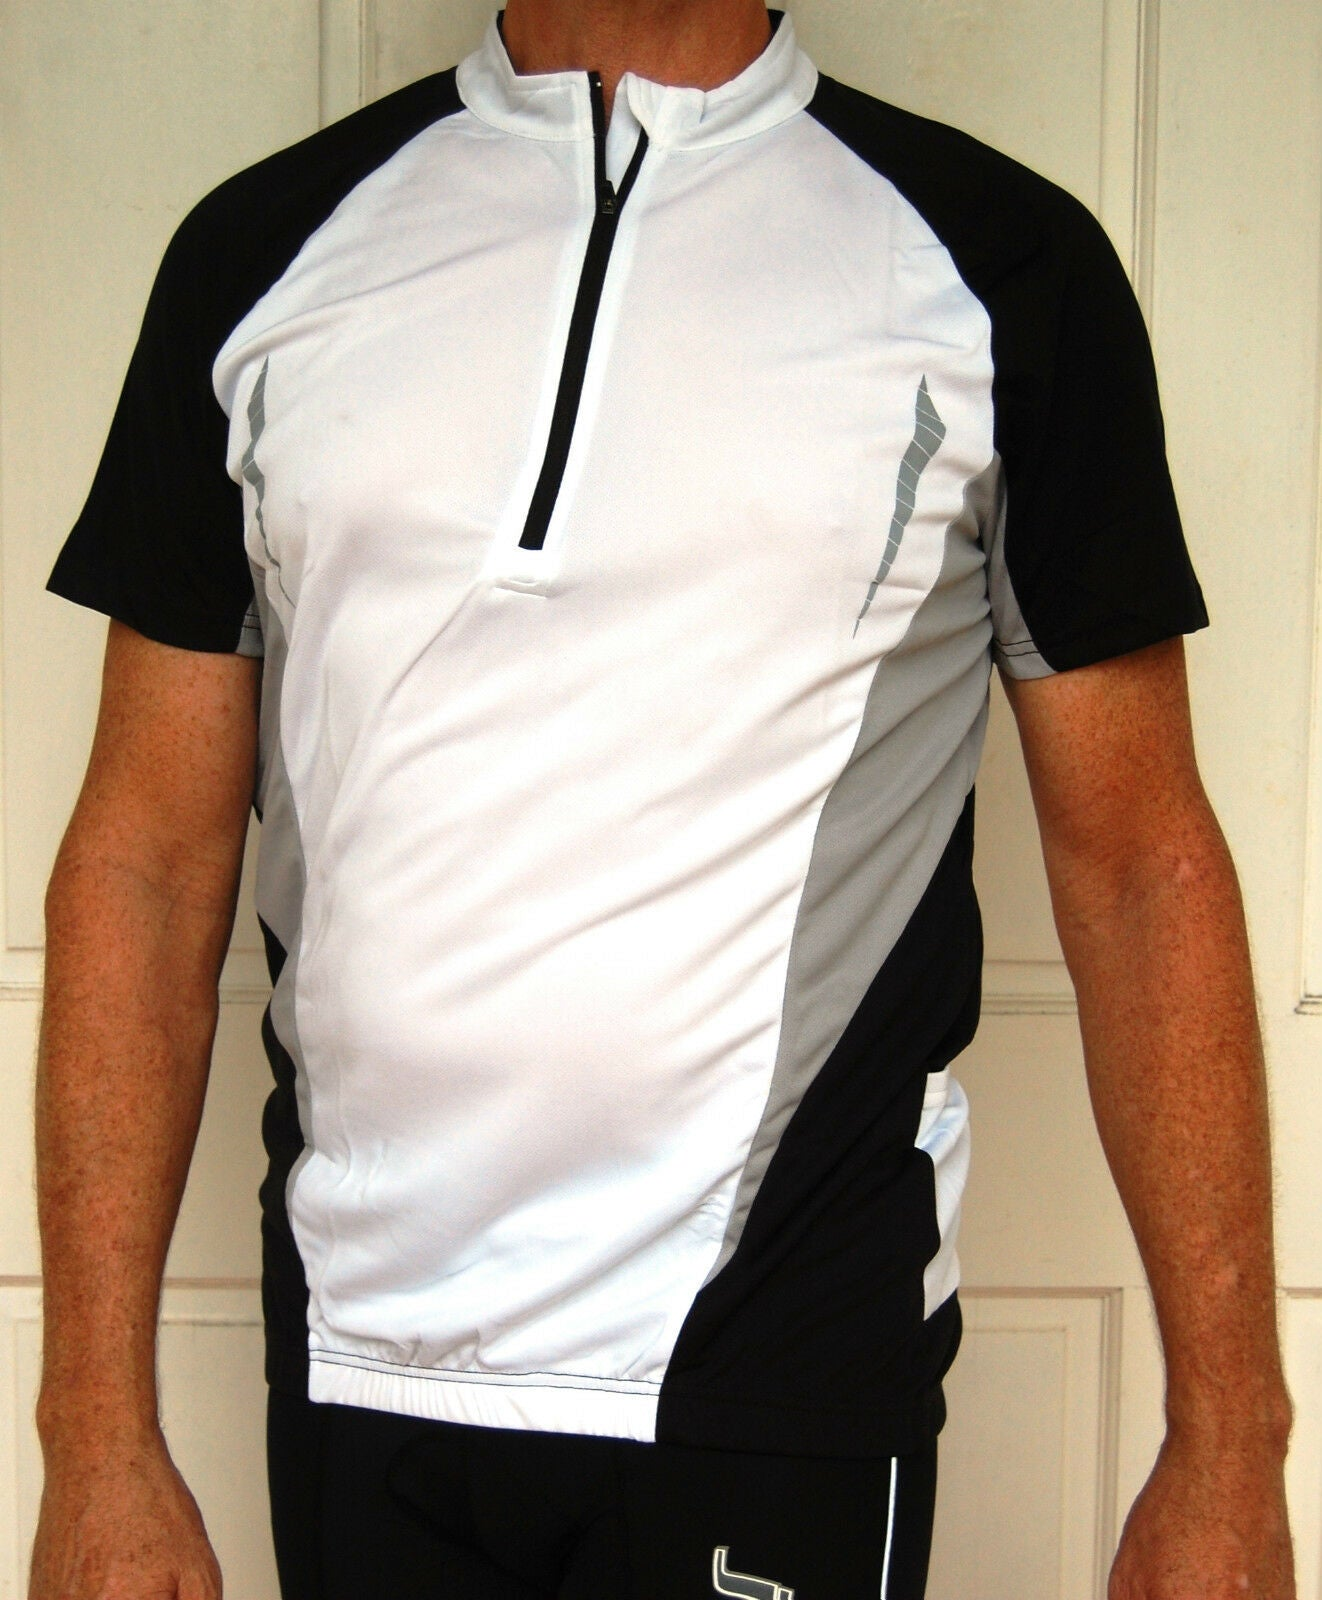 Unisex short sleeved cycling jersey (black/white)